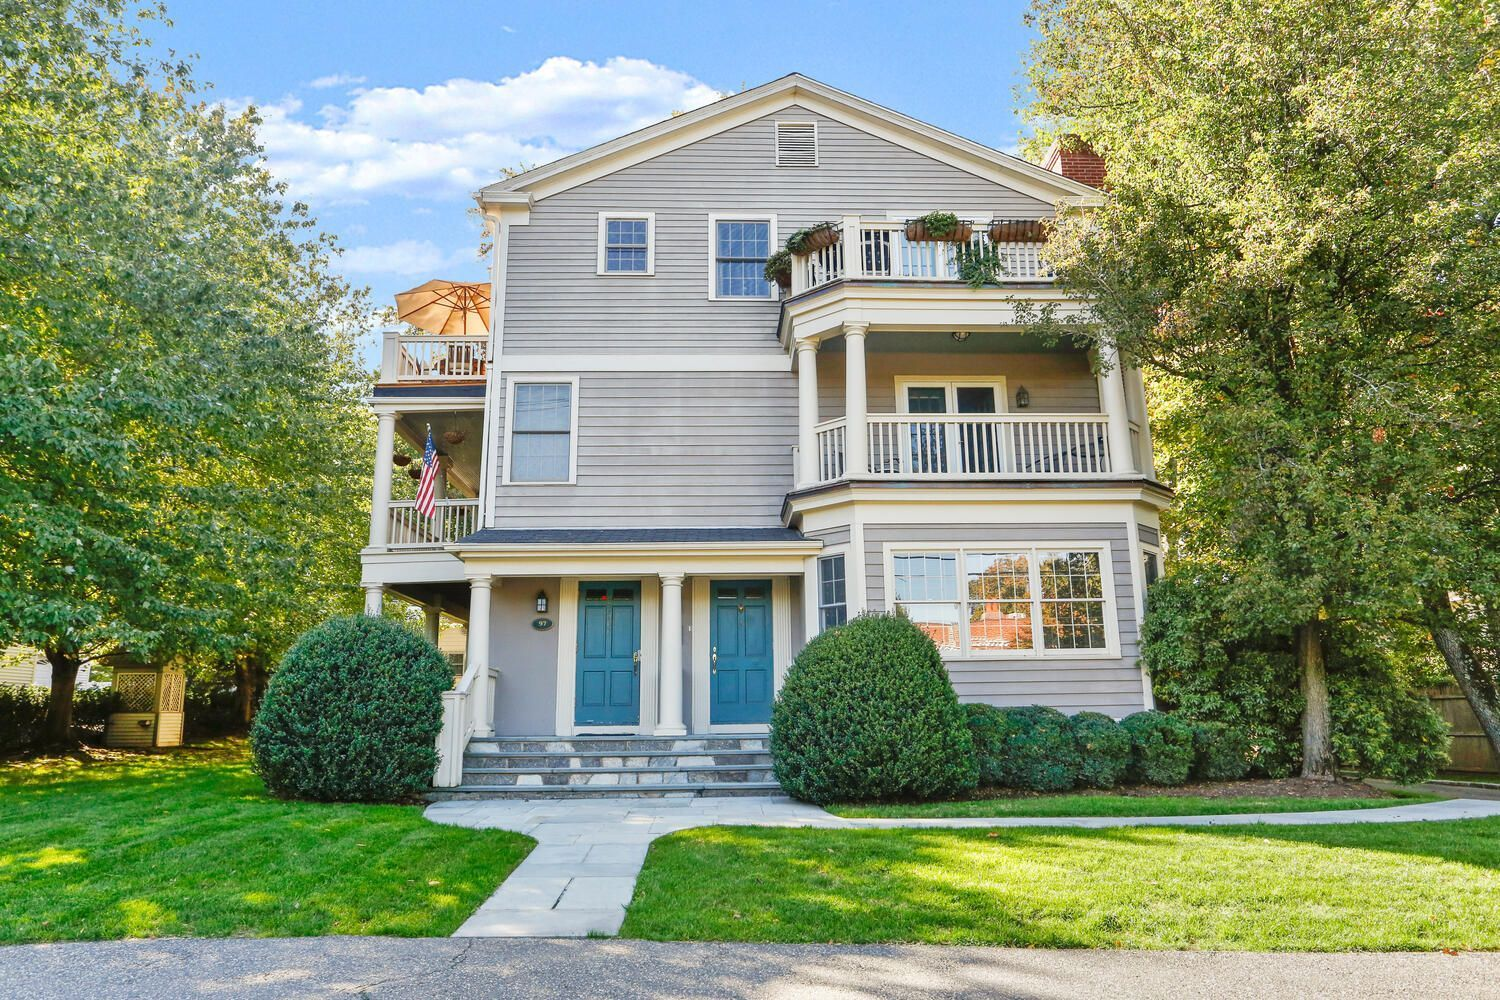 97 South Avenue D New Canaan, CT 06840 - Image 1